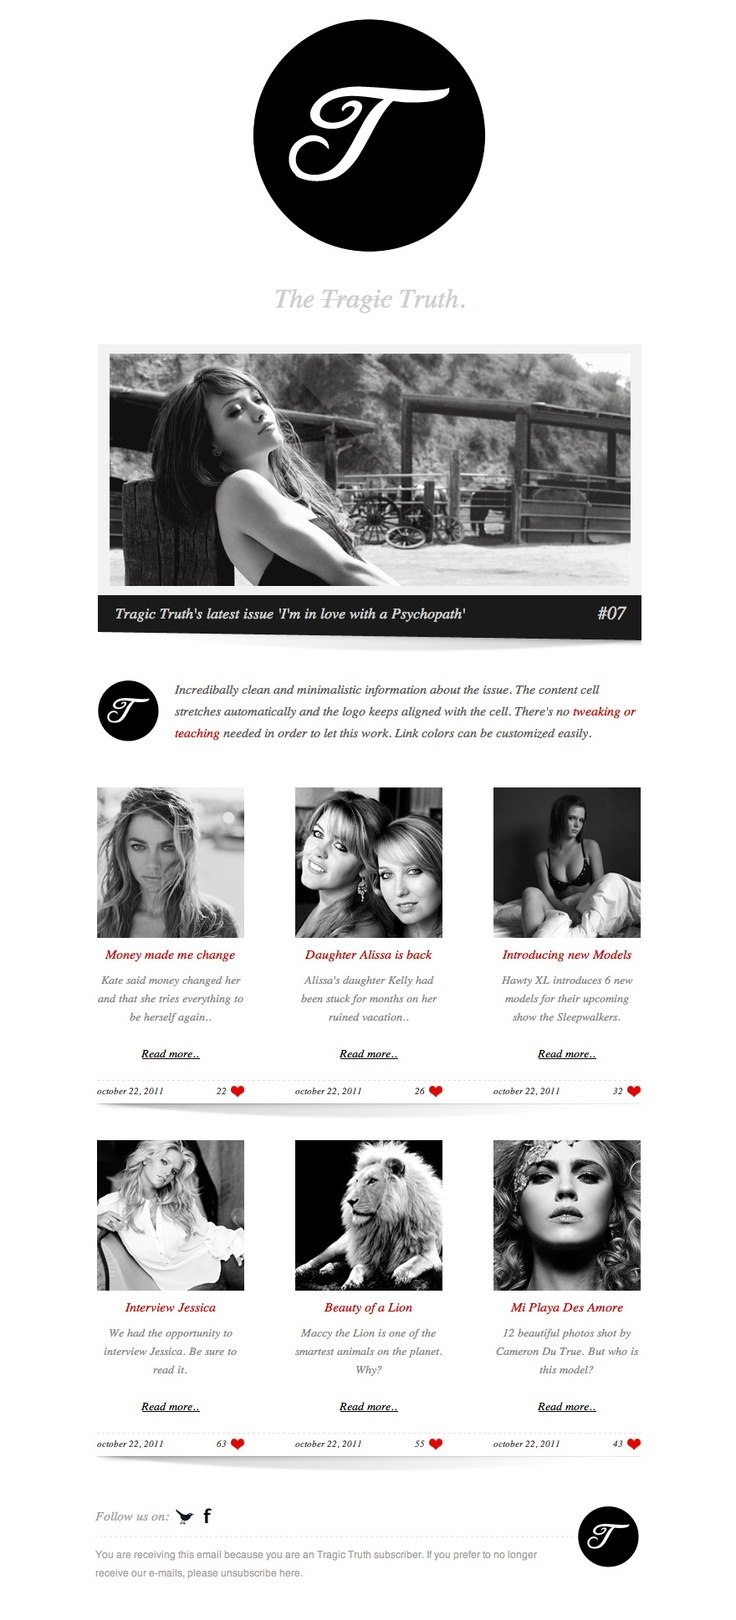 Convert color image to black and white online - The Tragic Truth Online Newsletter